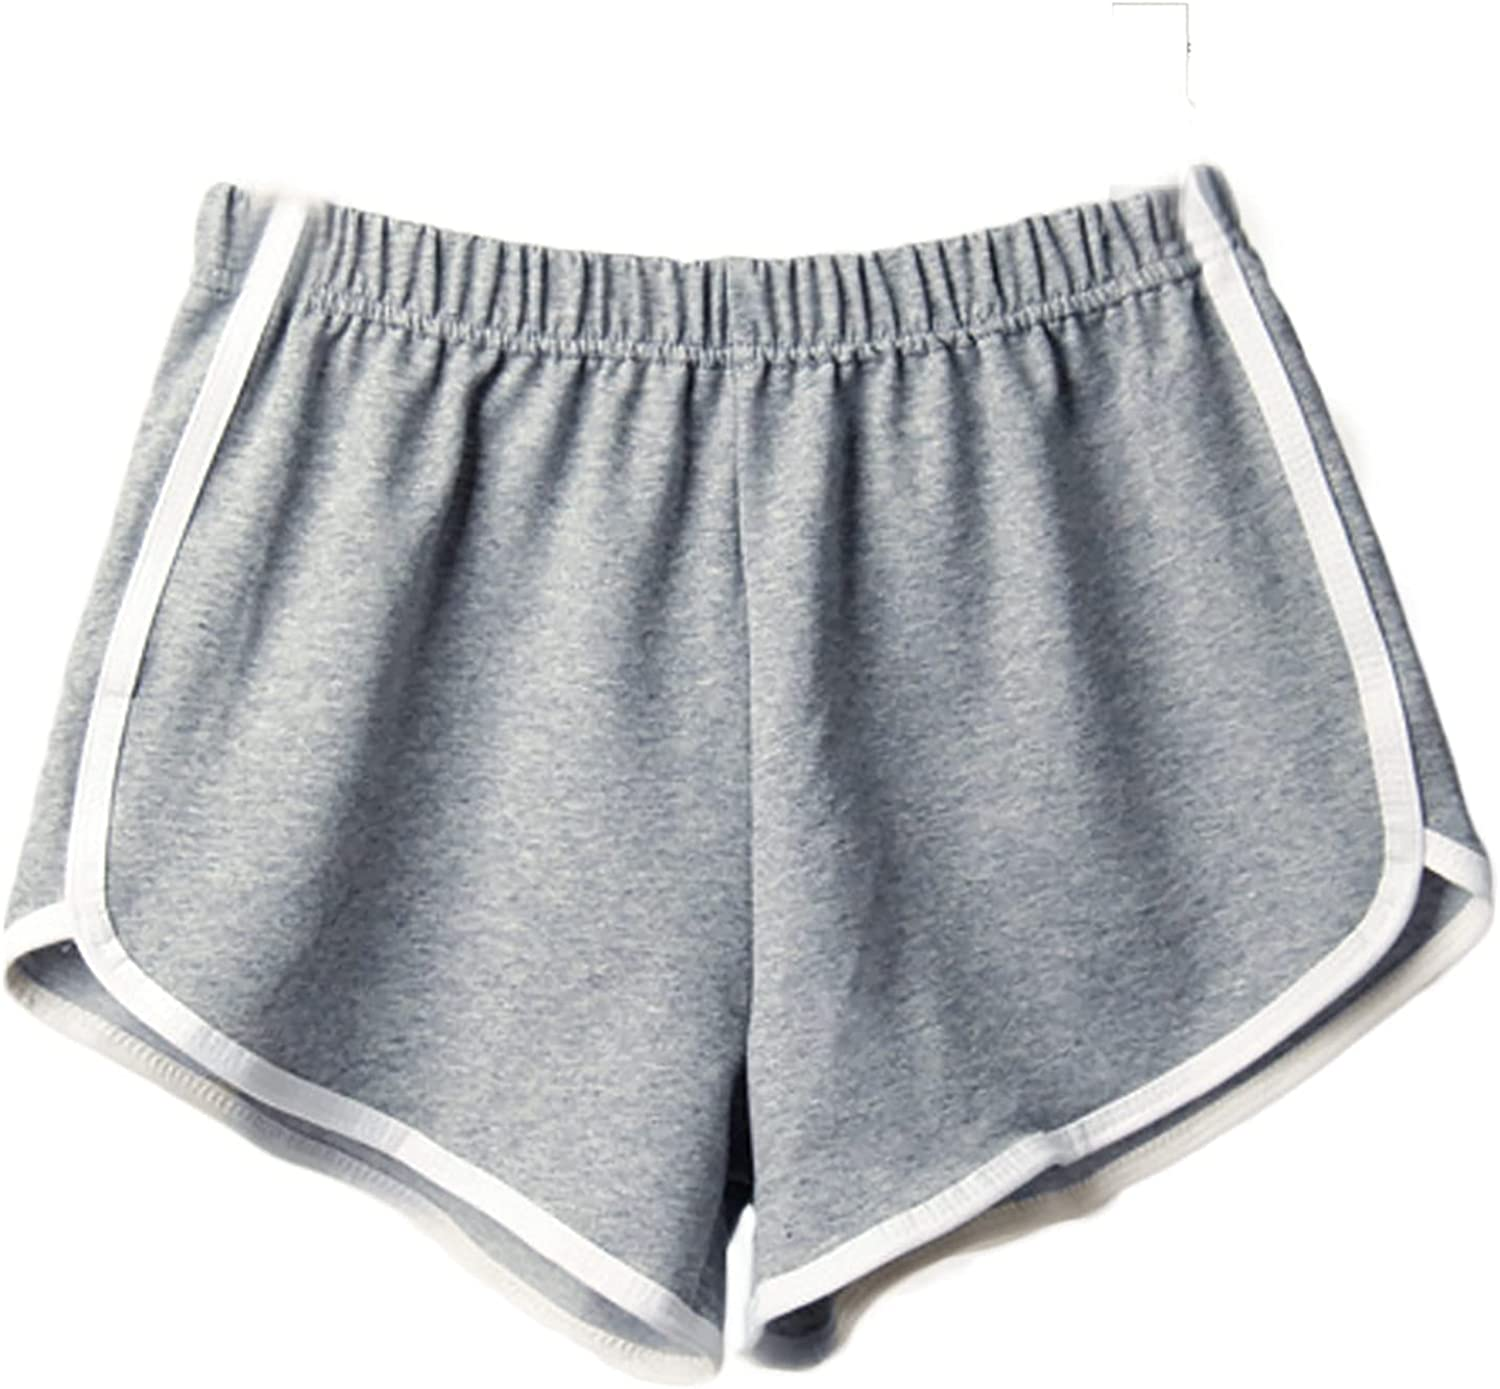 COMVALUE Womens Shorts for Summer, Women's Summer Beach Shorts Casual Comfy Pajama Shorts with Drawstring with Pockets